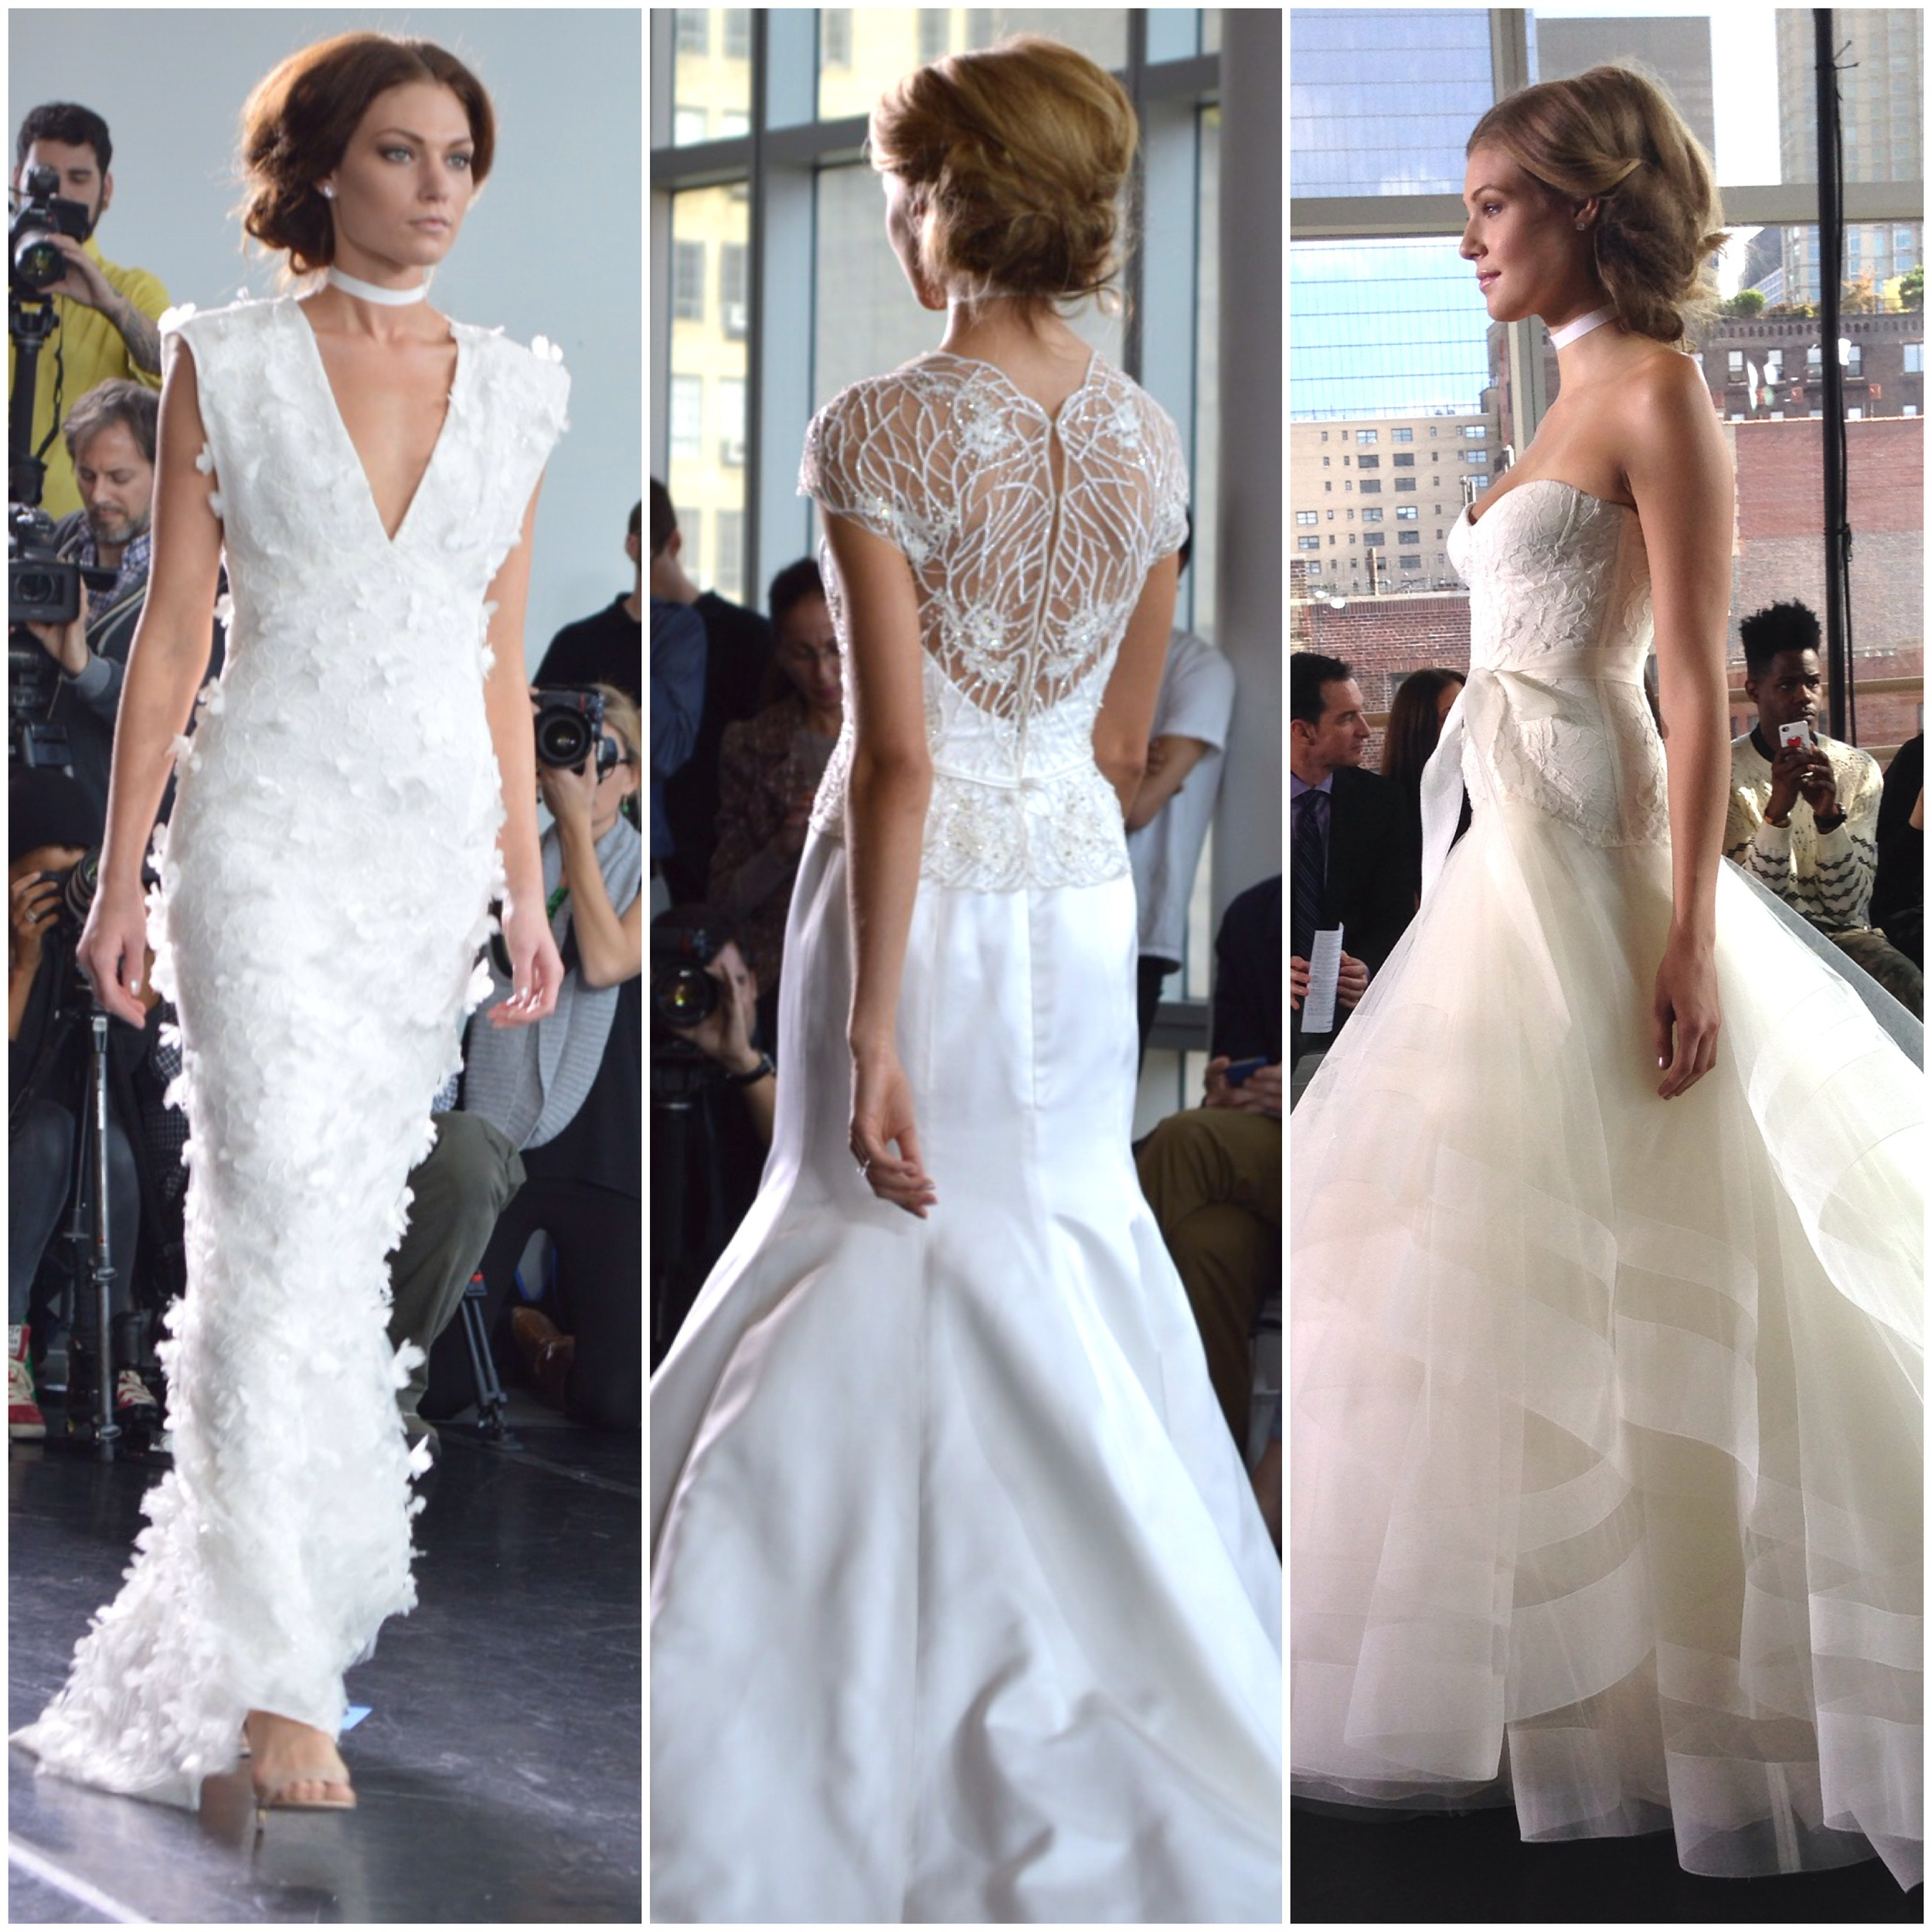 The GORGEOUS Rivini show. Always one of the best venues of Bridal Market, and the gowns were just beautiful.